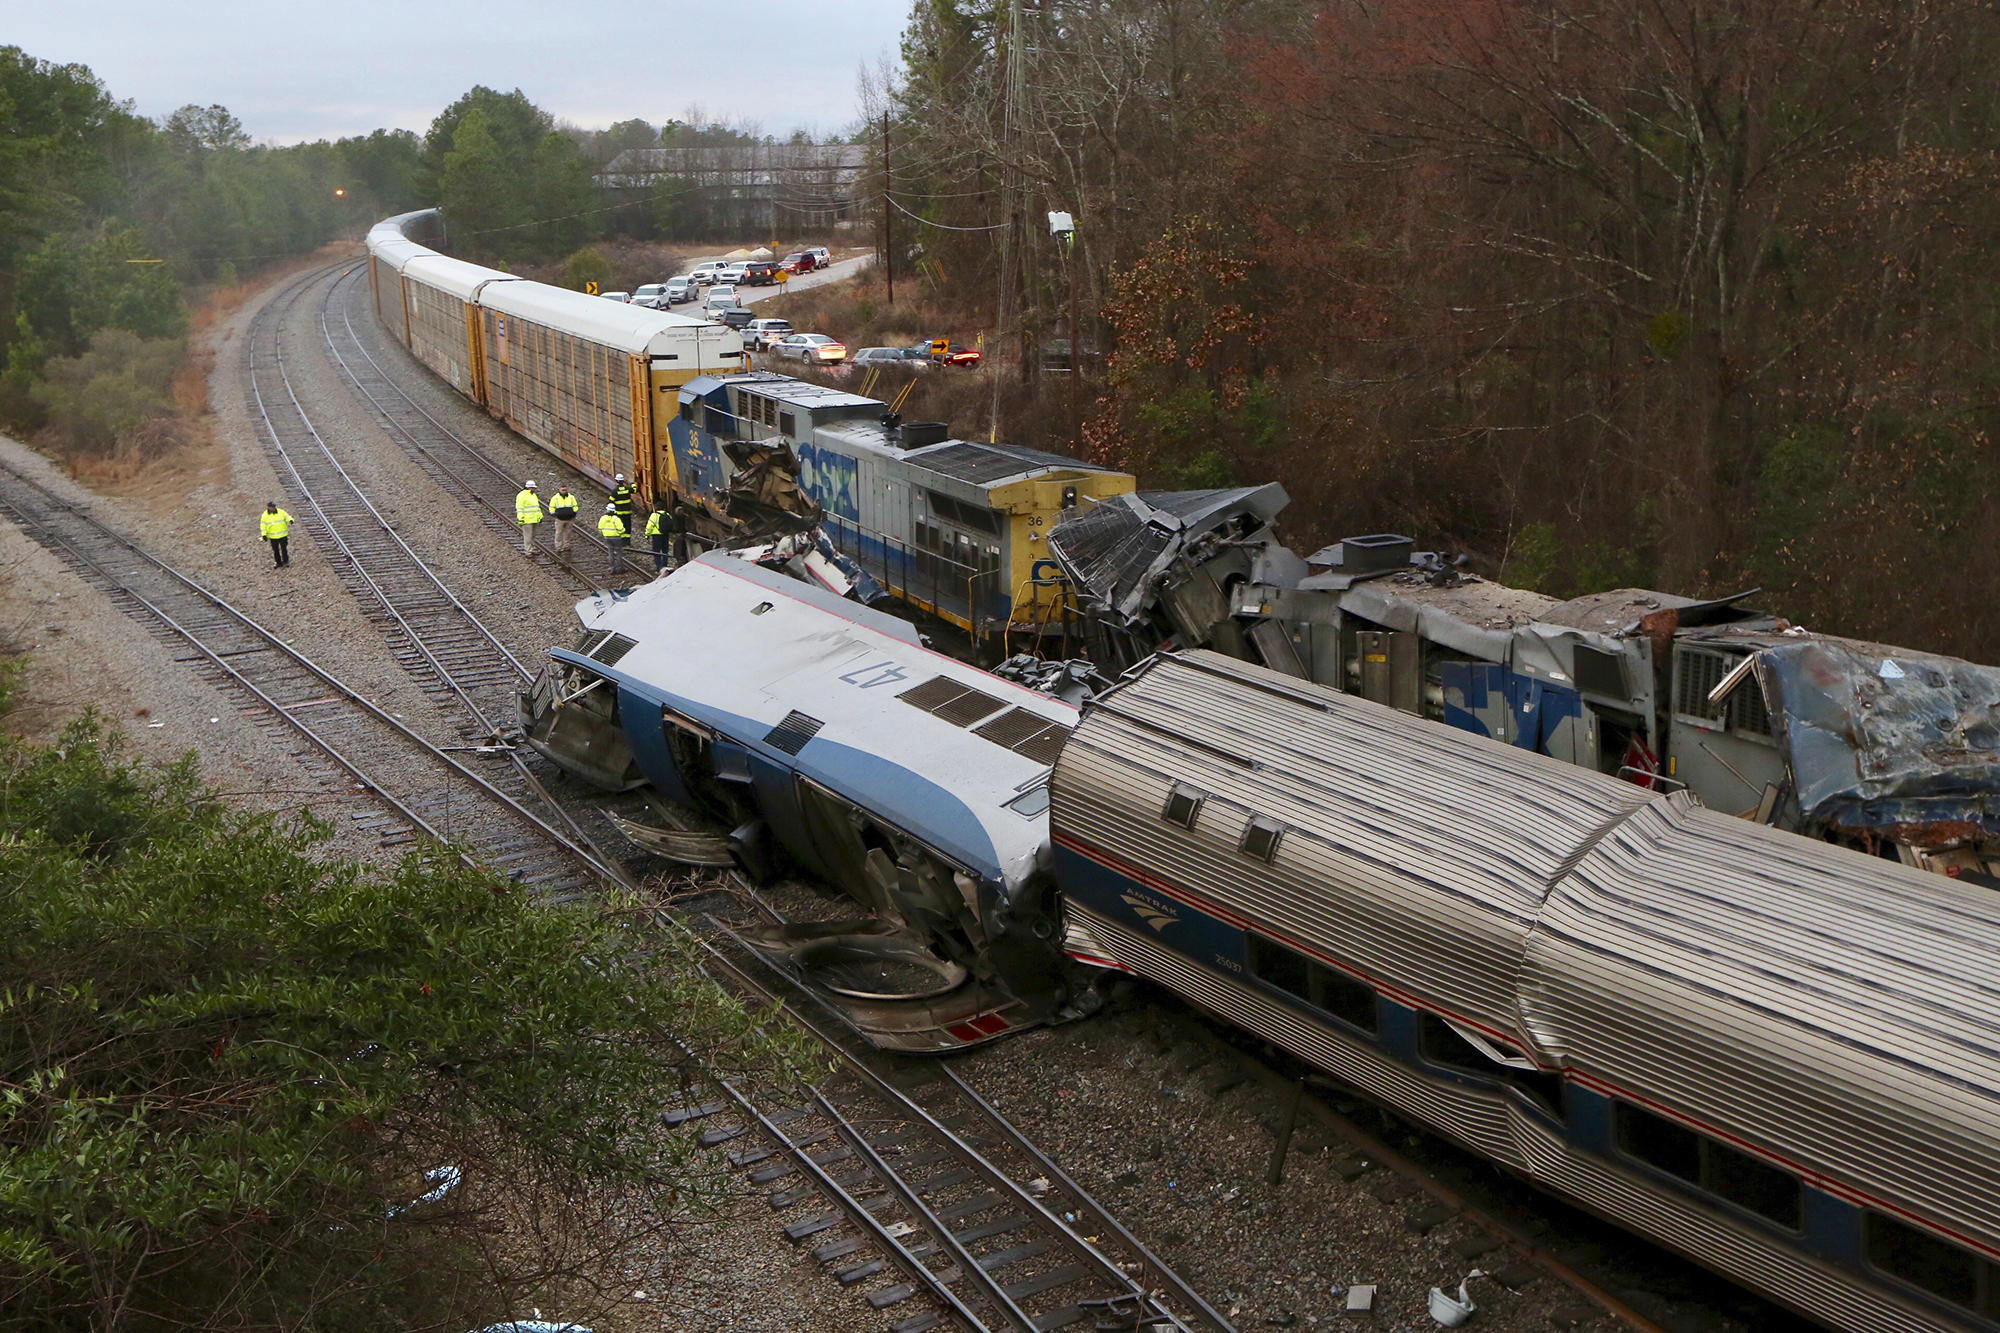 amtrak train crash today in south carolina leaves 2 dead 116